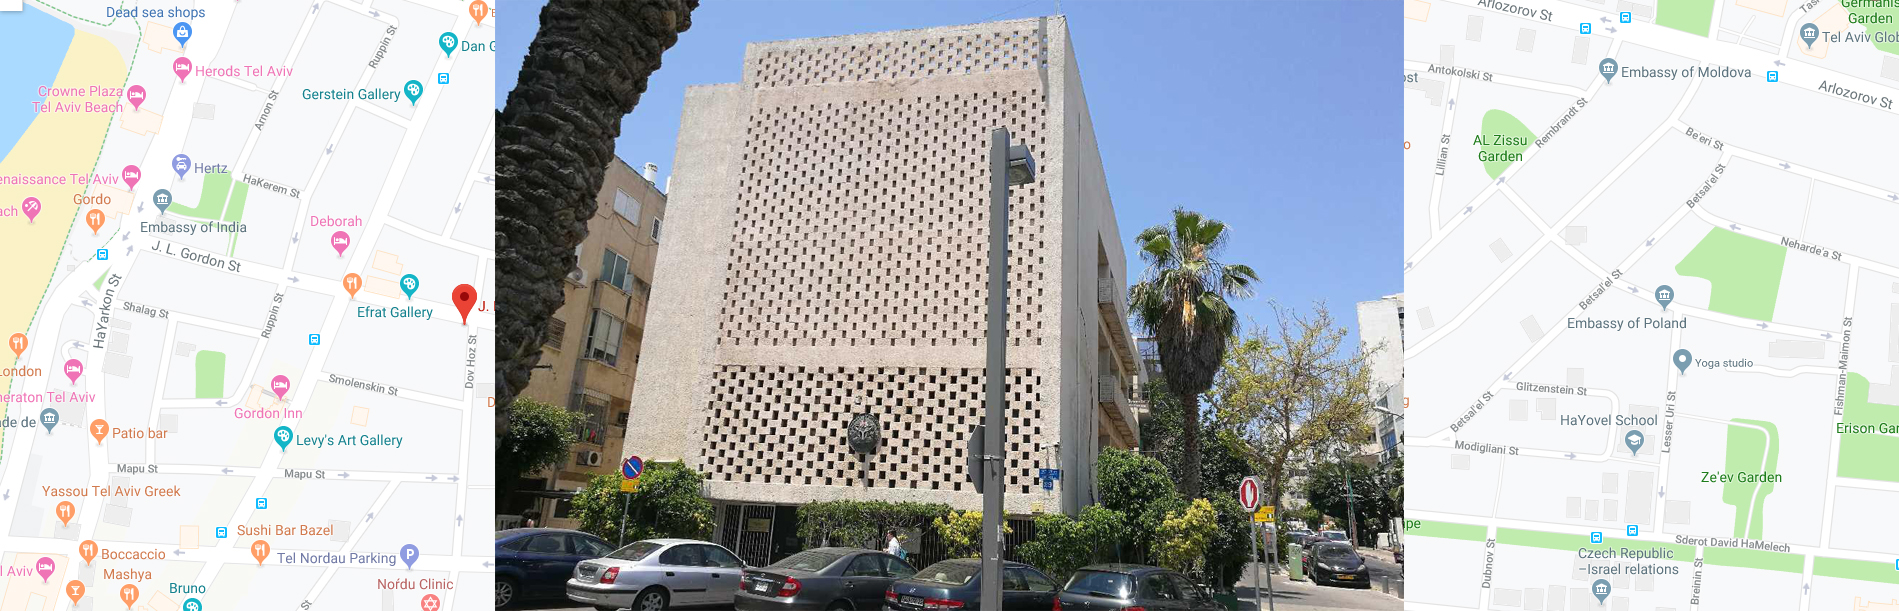 Embassy of Nigeria, Tel Aviv